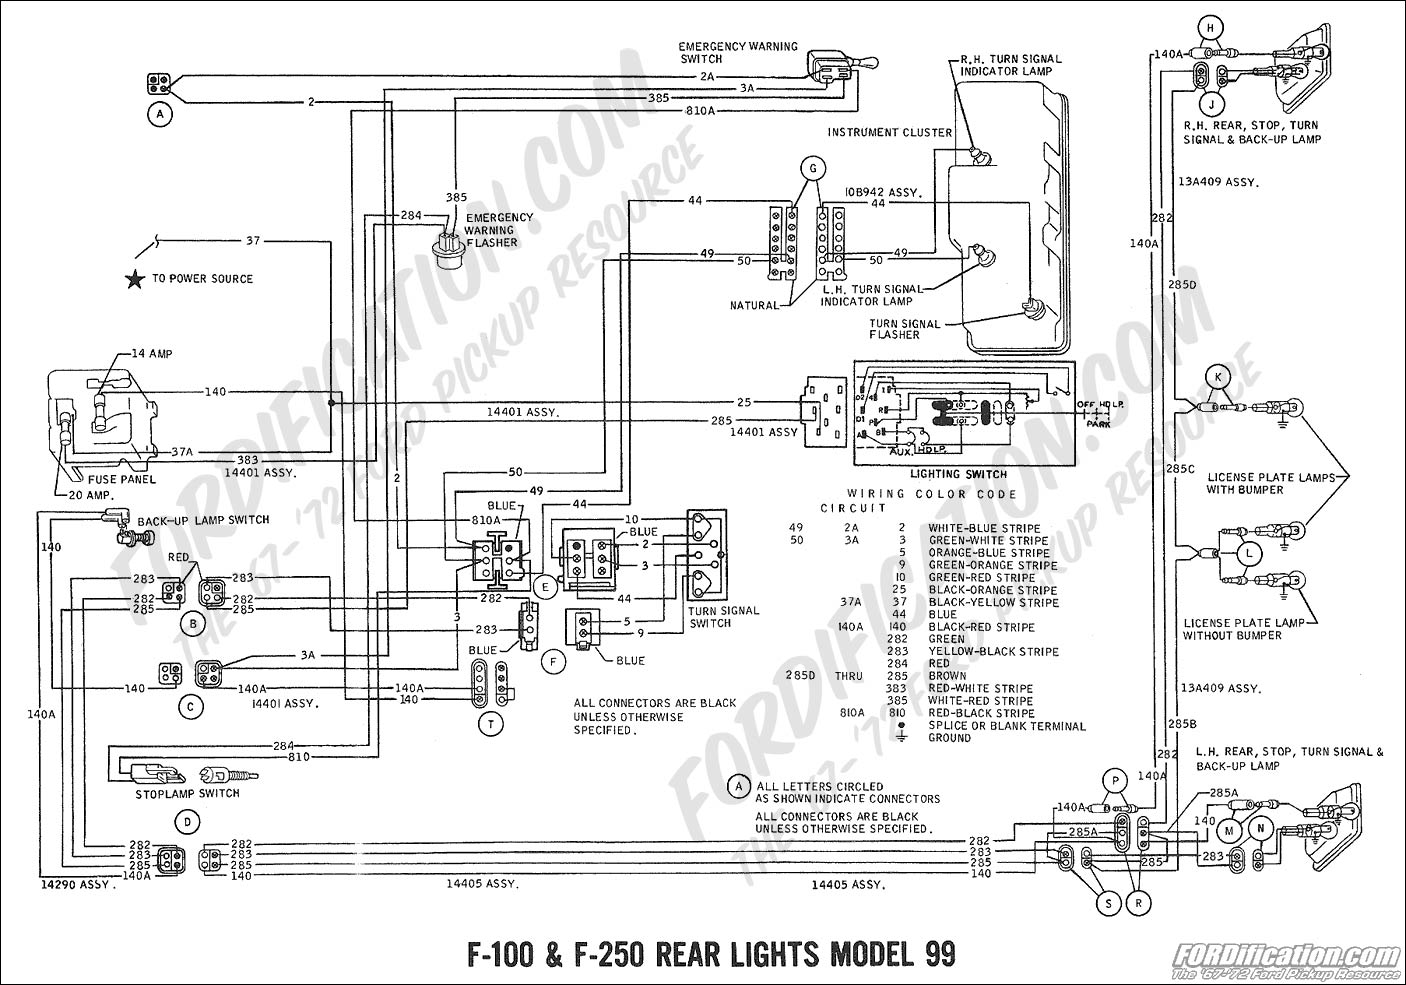 99 CIVIC WIRING DIAGRAM COURTESY LIGHTS L21935 on 1998 Ford E350 Fuse Box Diagram